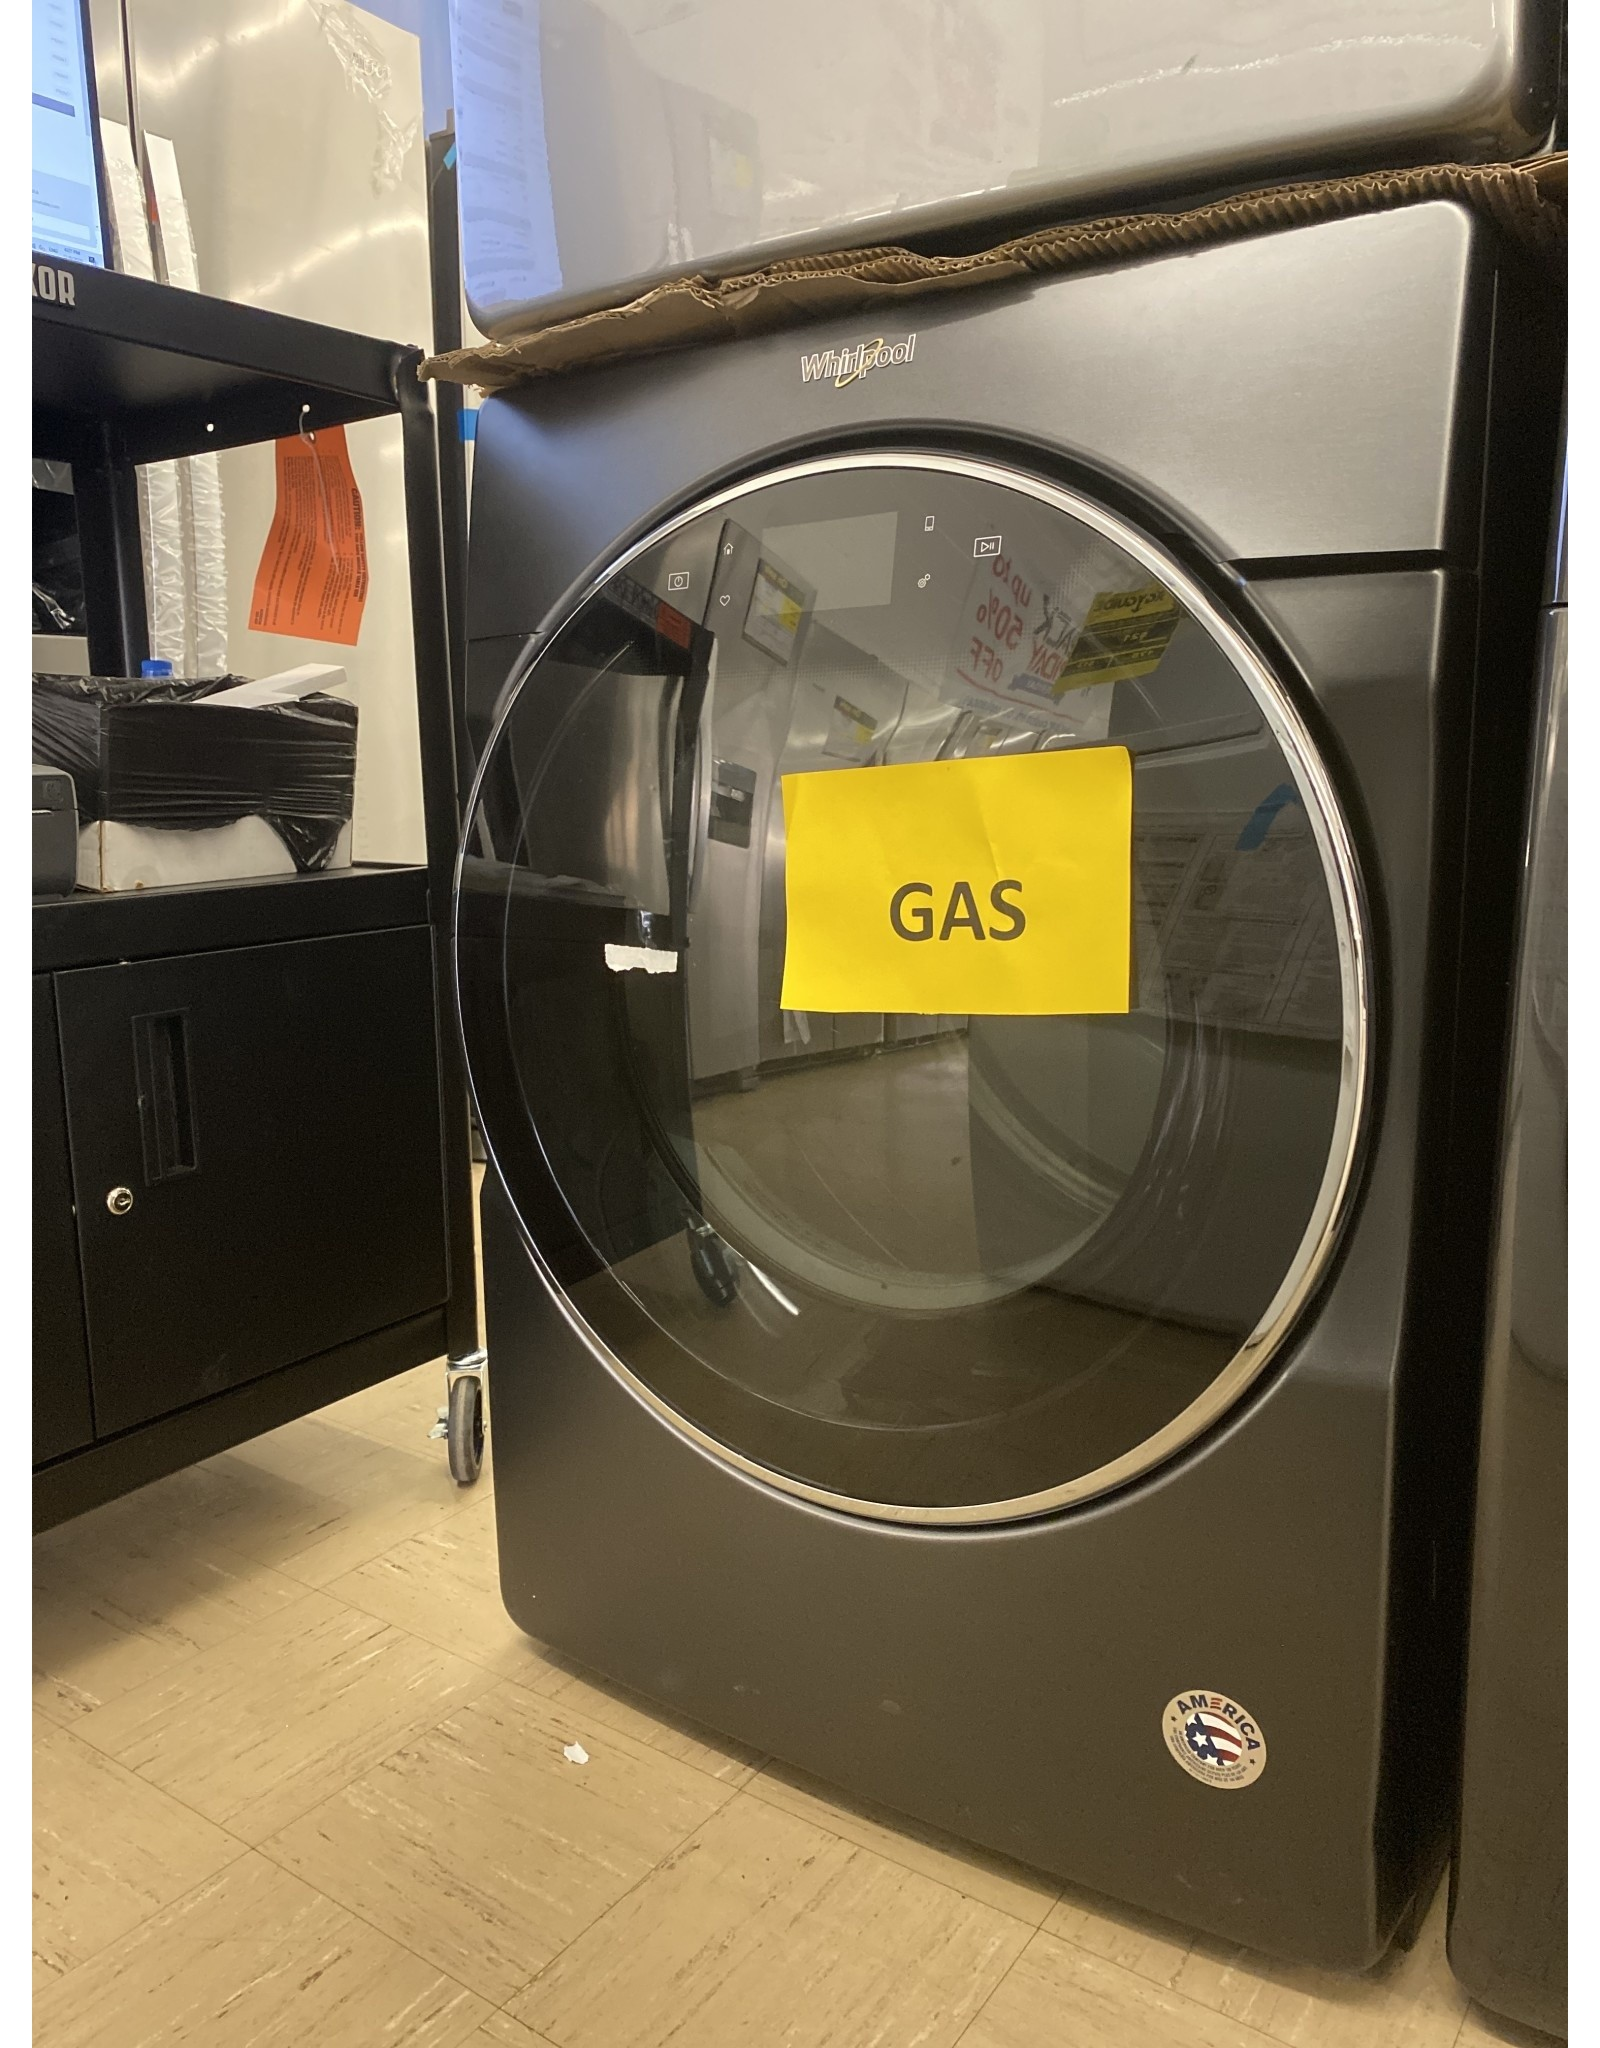 WHIRLPOOL WGD9620HBK 7.4 cu. ft. 120-Volt Black Shadow Stackable Smart Gas Vented Dryer with Remote Start, ENERGY STAR